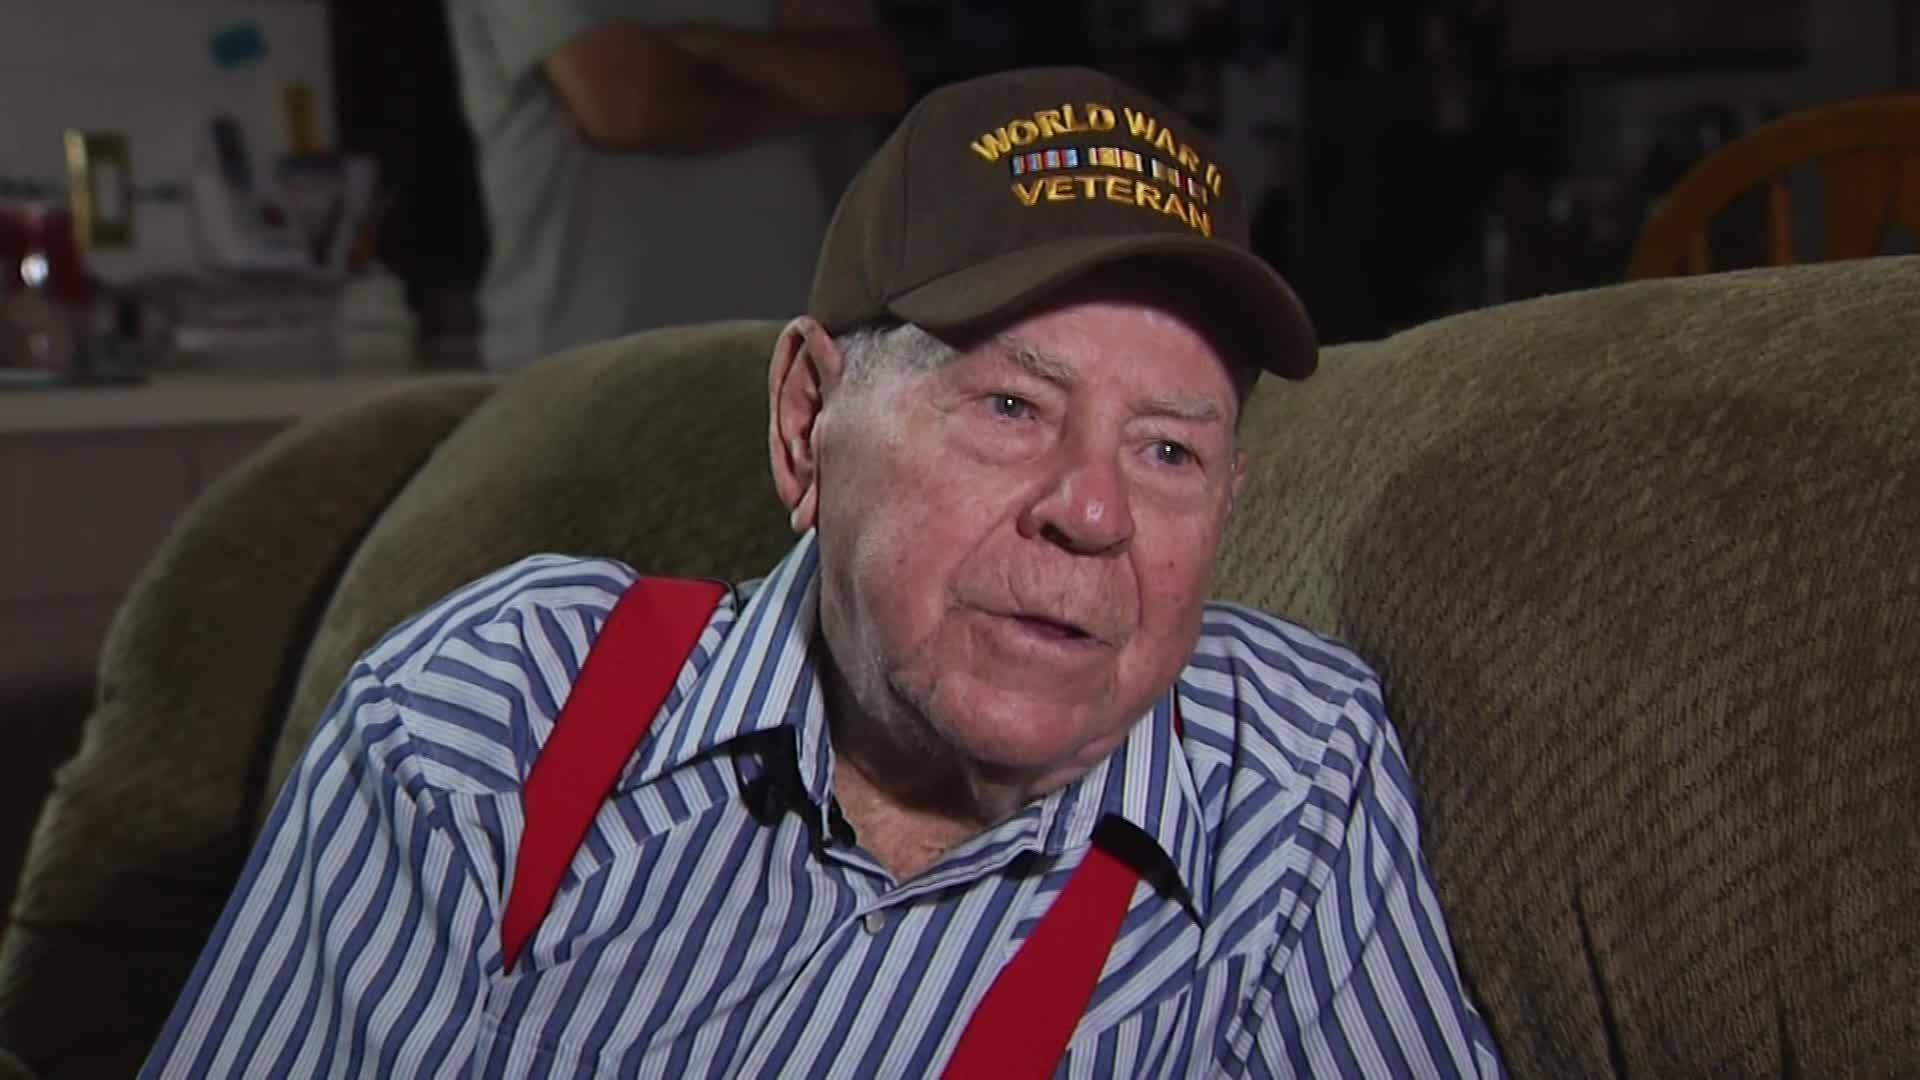 Veterans_Voices__WWII_Vet_remembers_Batt_0_20181004213949-873703993